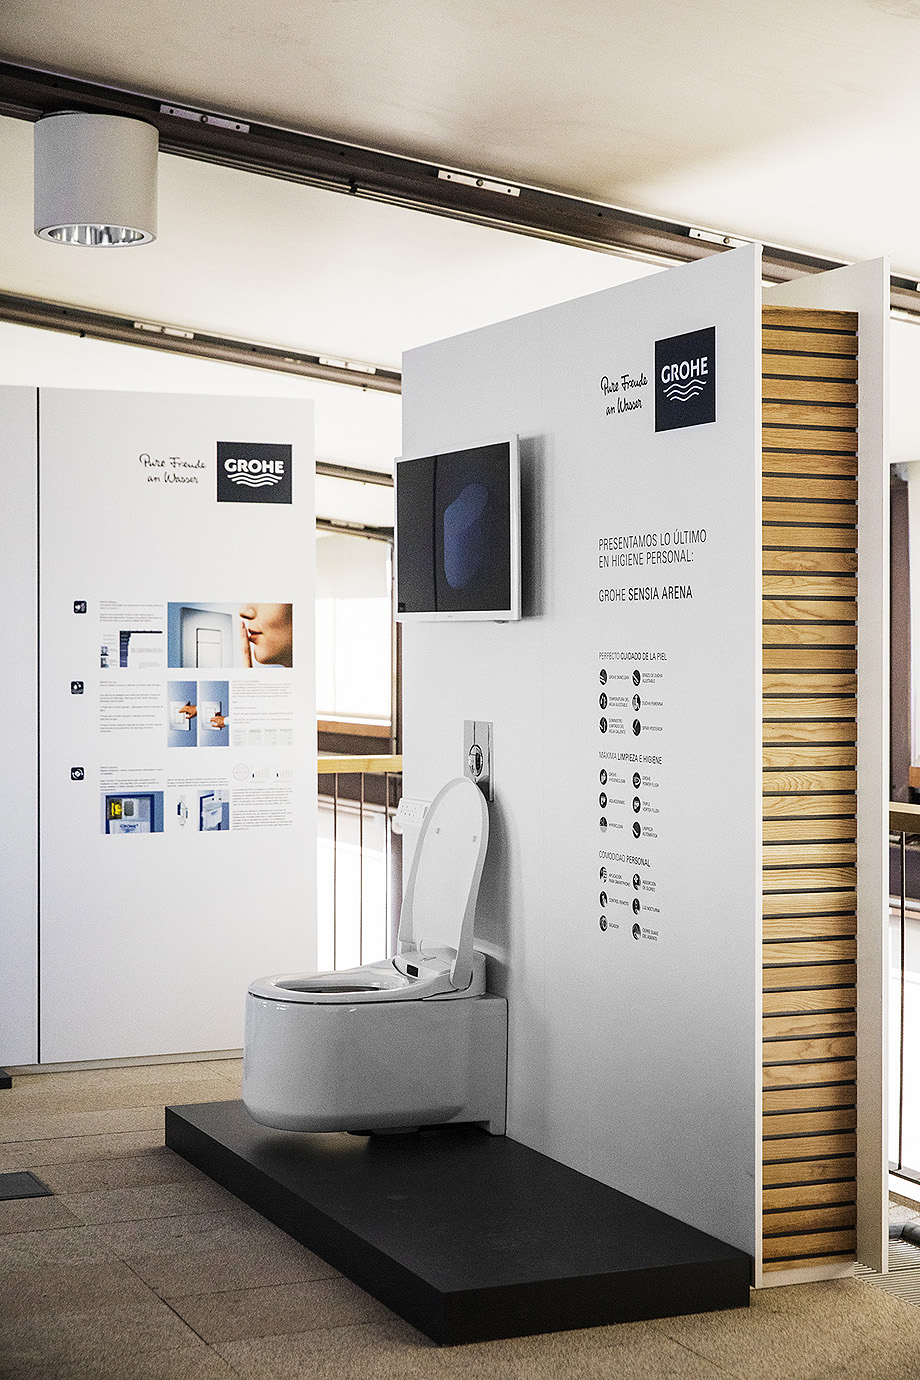 ampliacion showroom grohe en el coam (7)